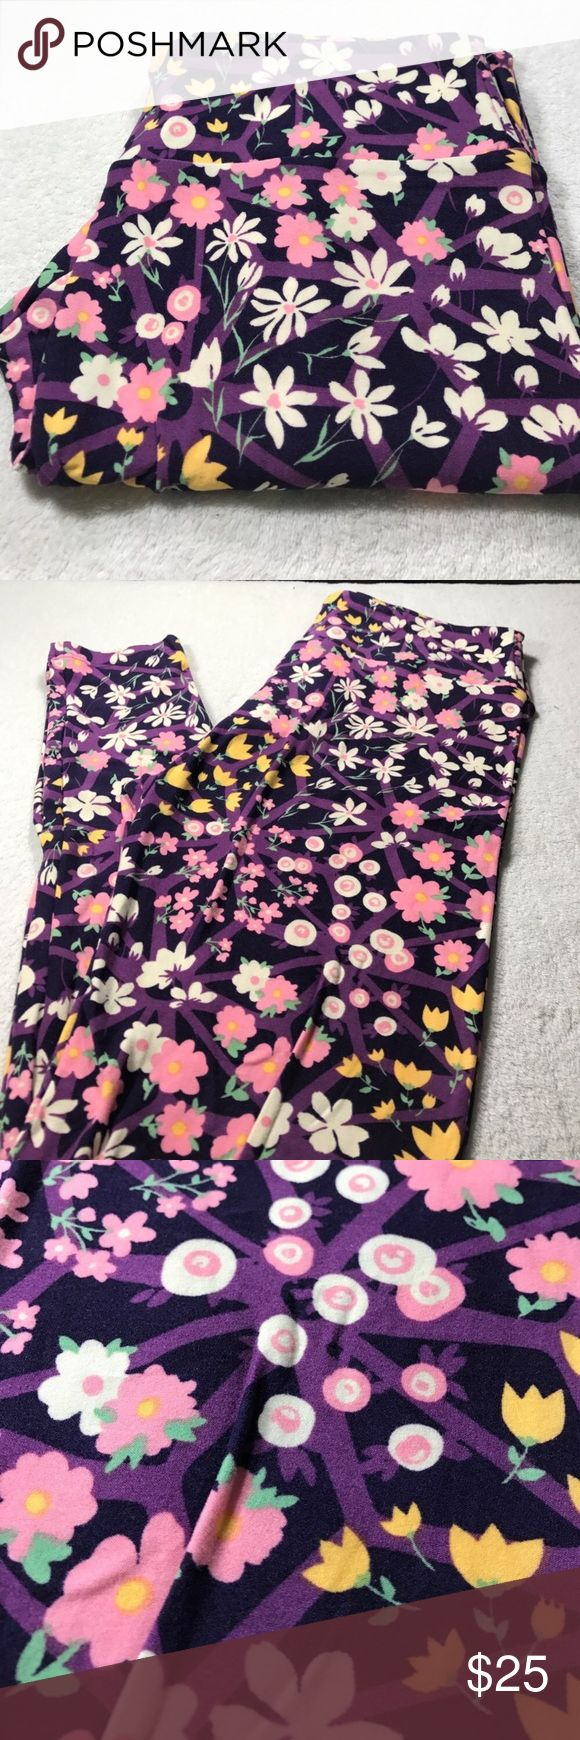 LuLaRoe Tall and curvy leggings nwt LuLaRoe Tall and curvy leggings nwt 🍀price is firm unless bundled LuLaRoe Pants Leggings